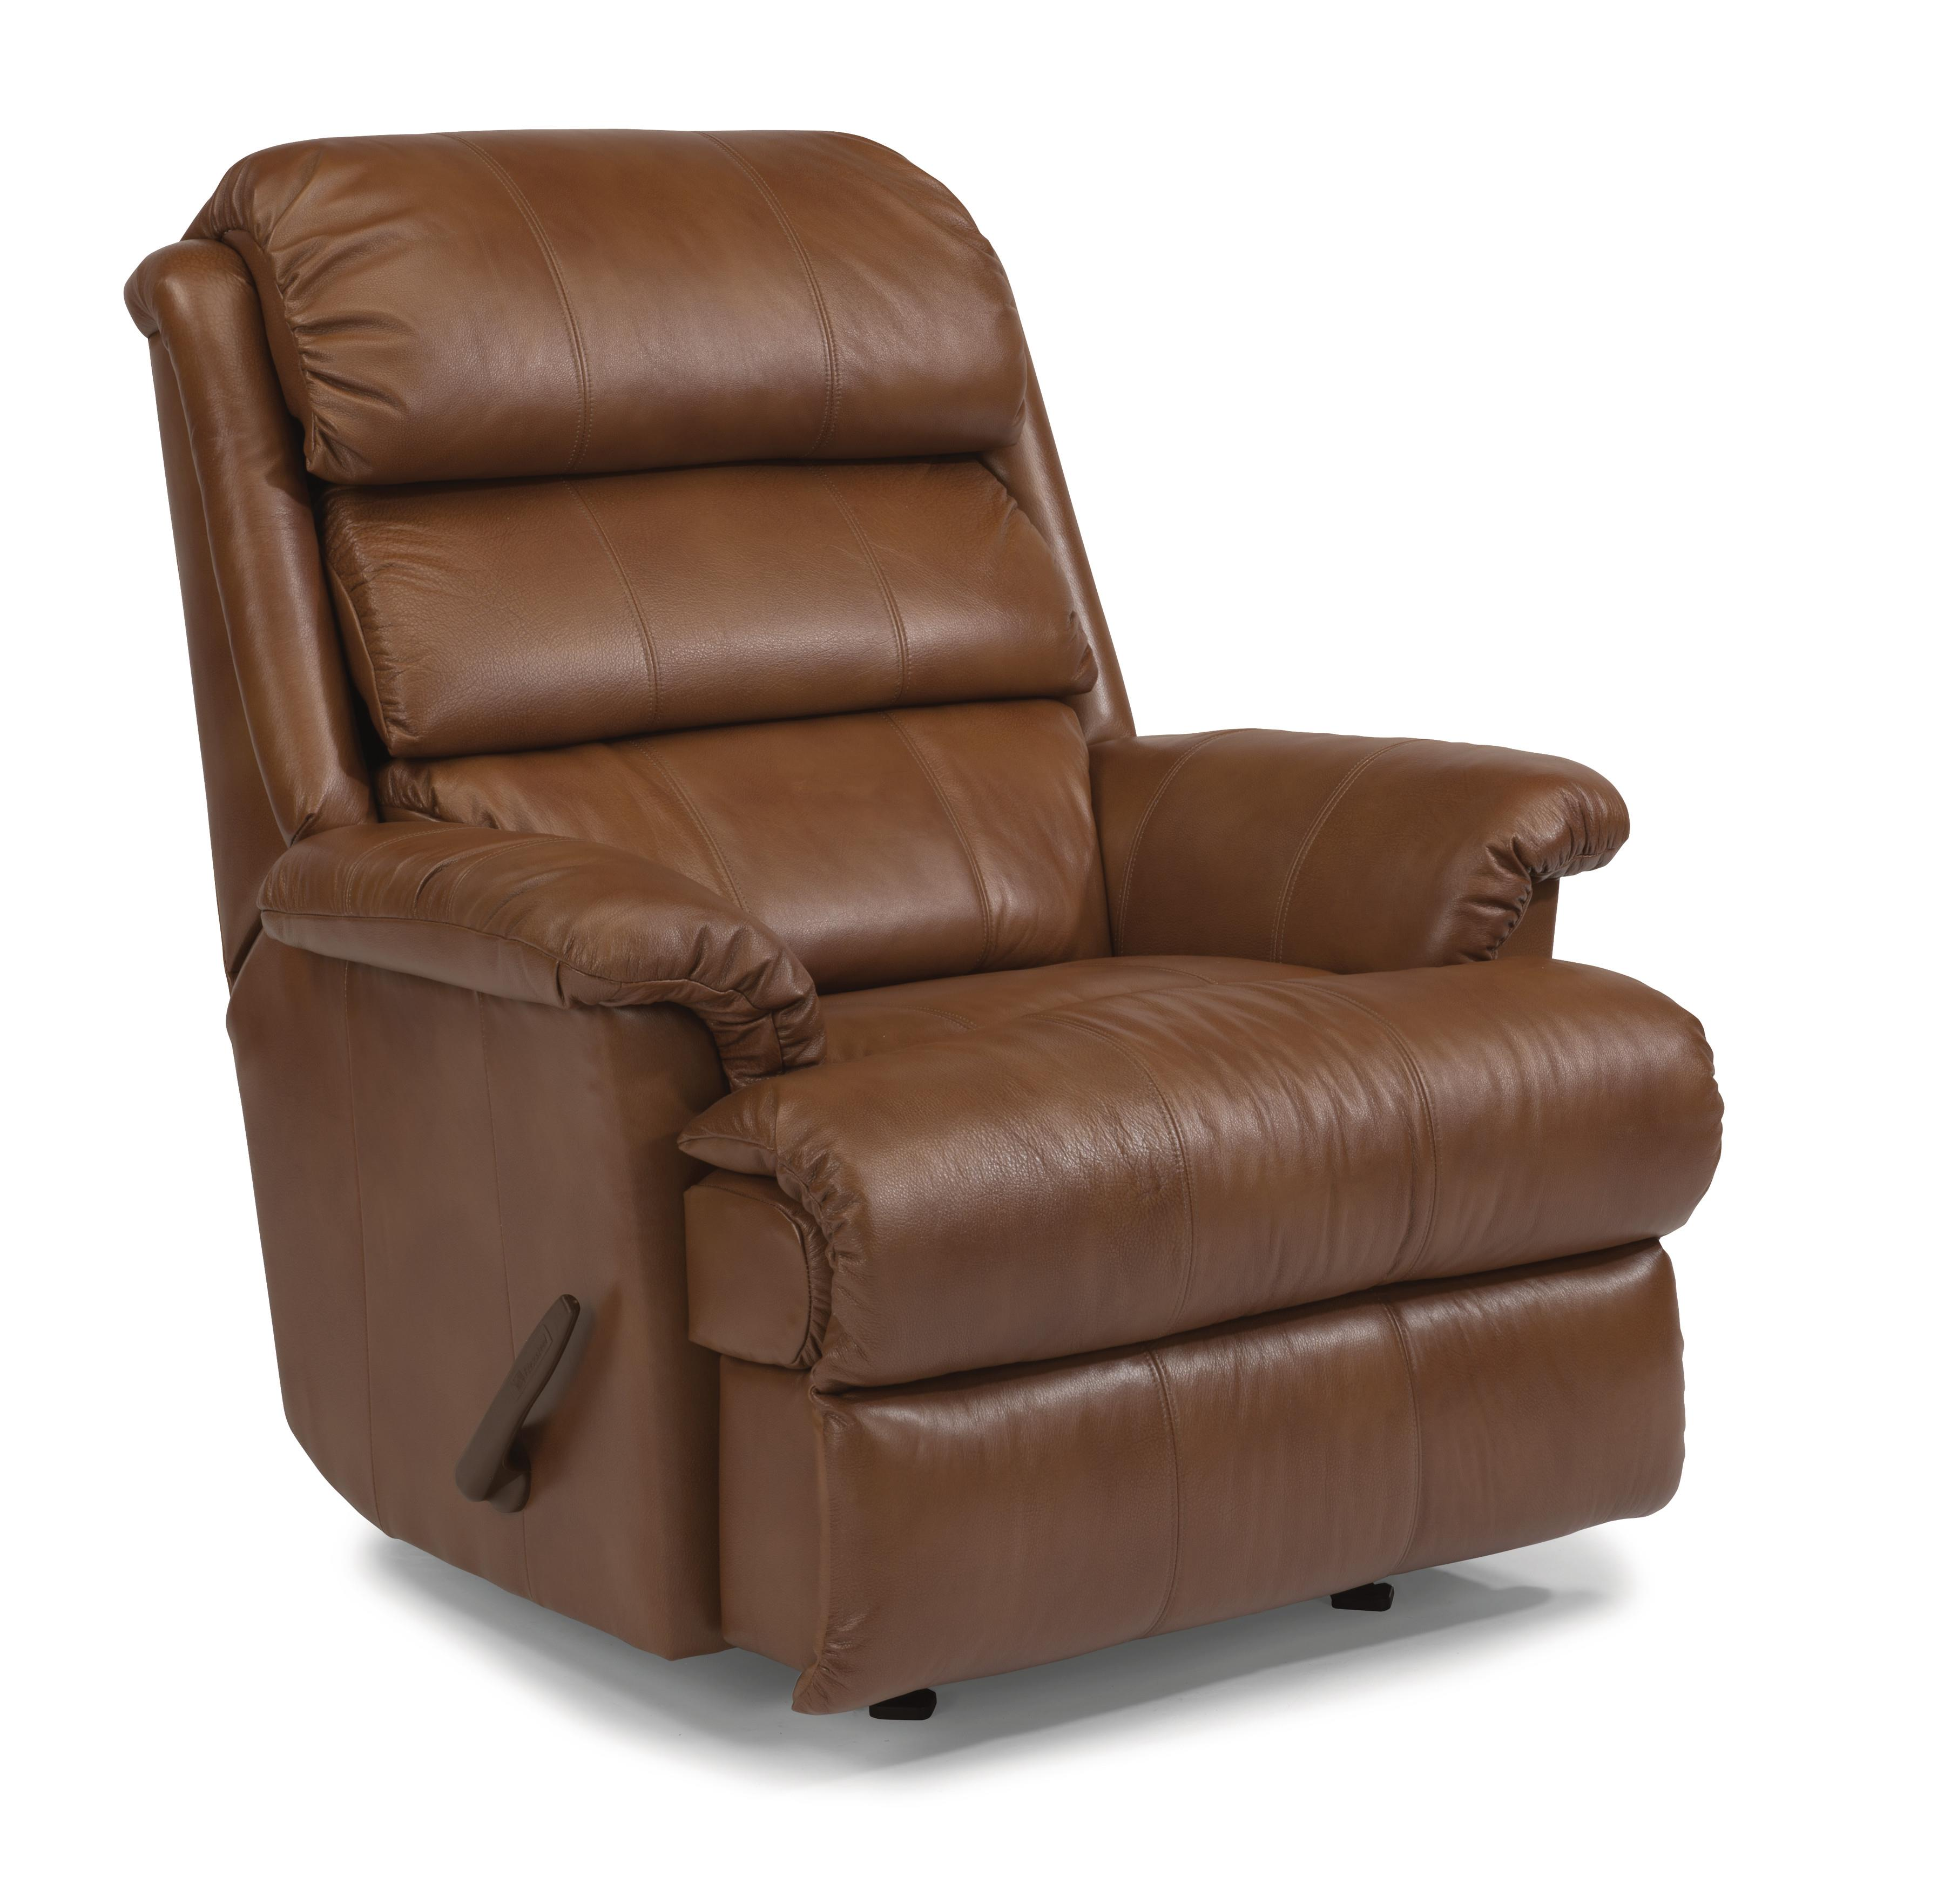 glider recliner chair executive leather office chairs melbourne flexsteel accents 2209 530 yukon swivel